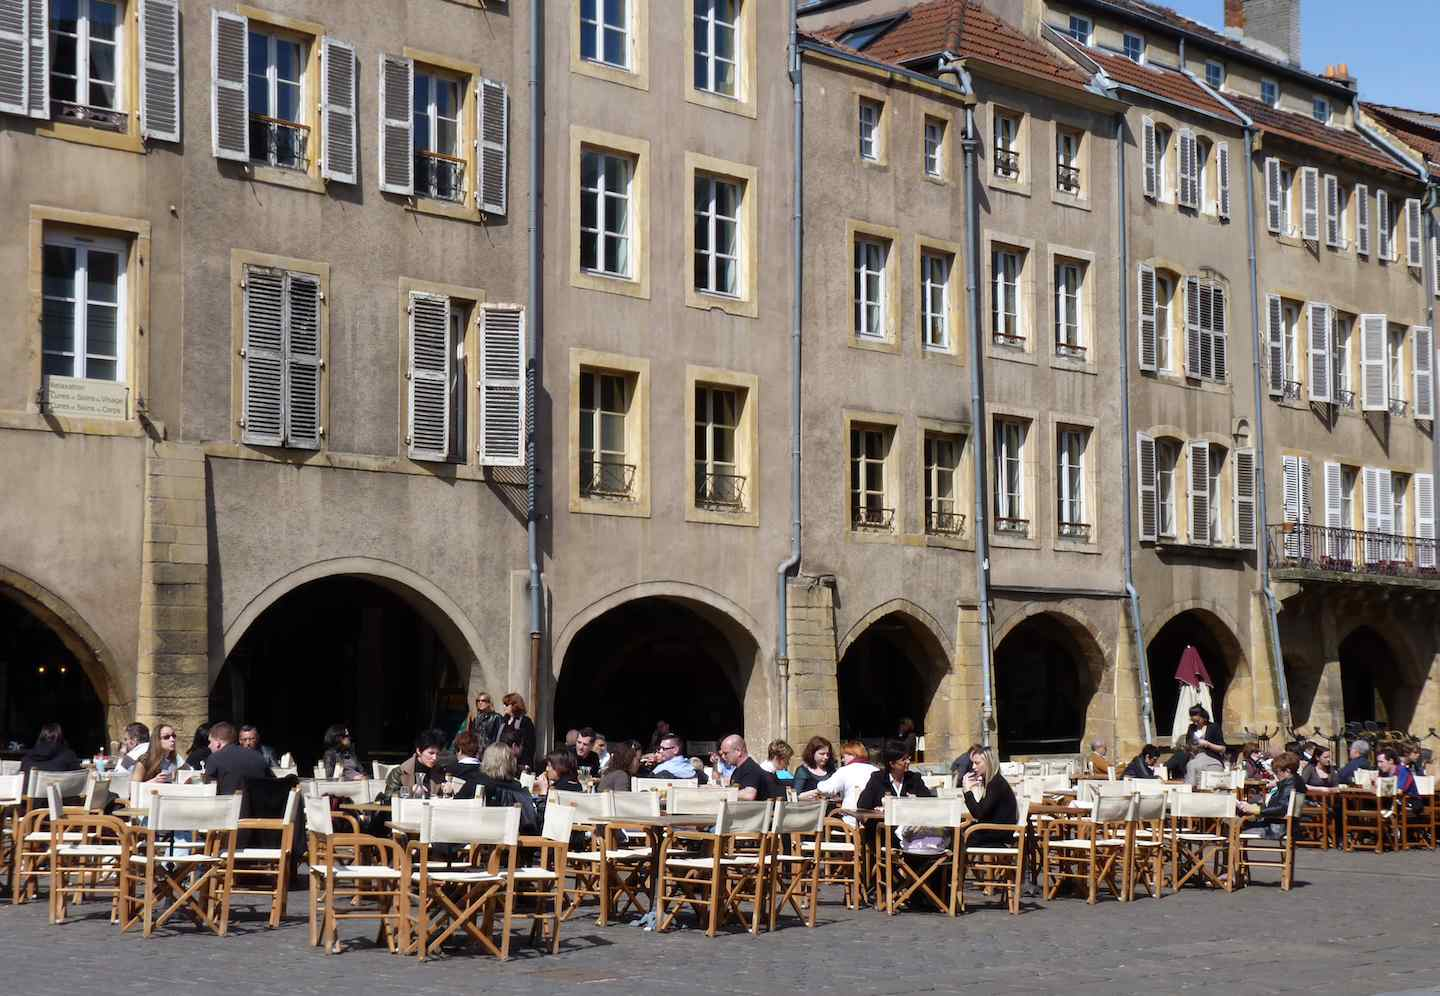 Dispatch from Metz: Great Squares of Metz